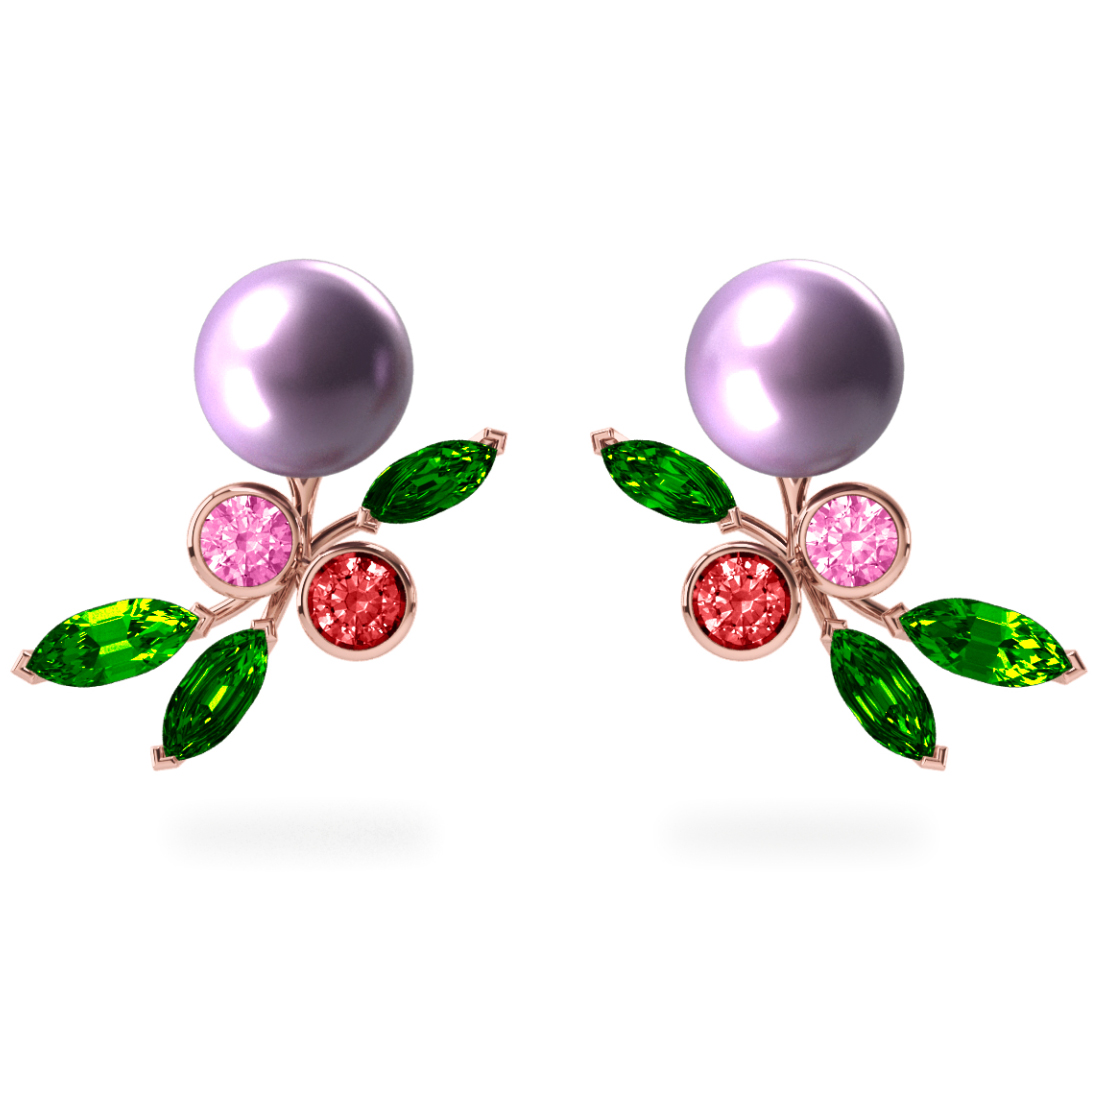 Boucles d'oreilles My Angel Mauve - Saphirs, diamants, tsavorites & perles de Tahiti <br /> Or rose 18 carats